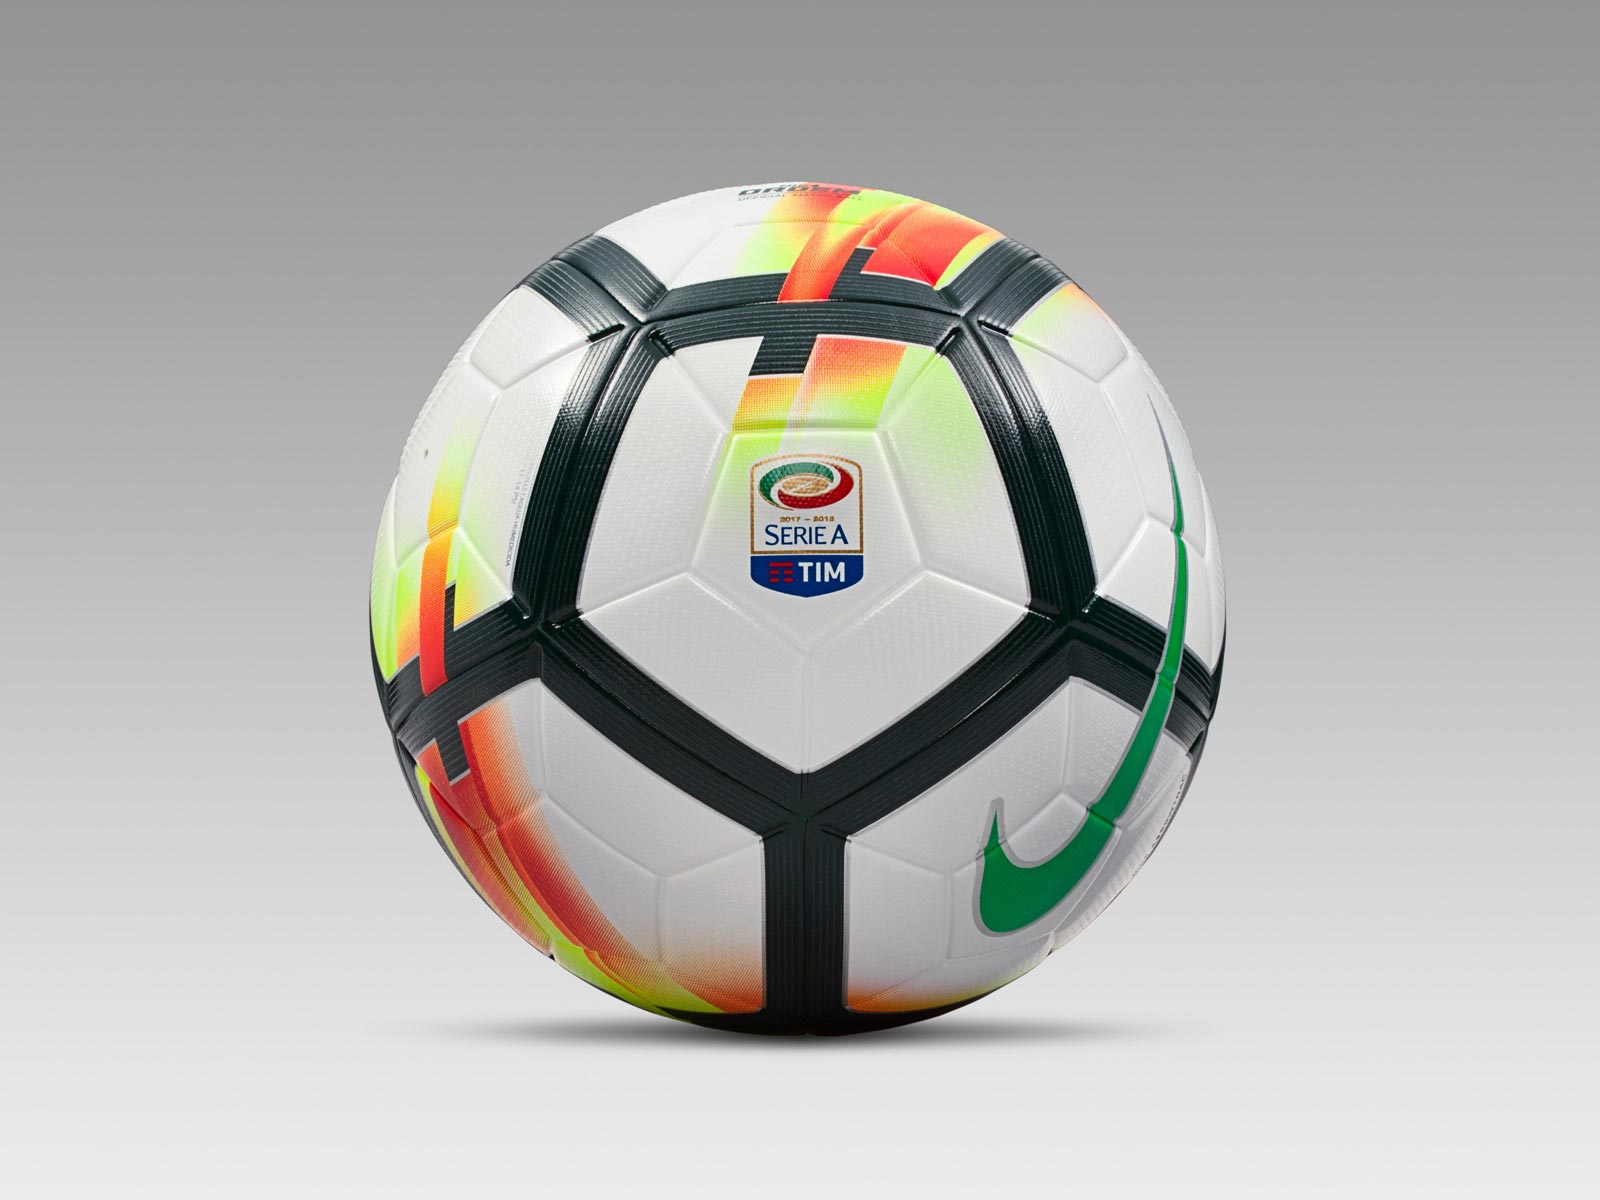 Serie A: Nike Serie A 2017-18 Ball Released